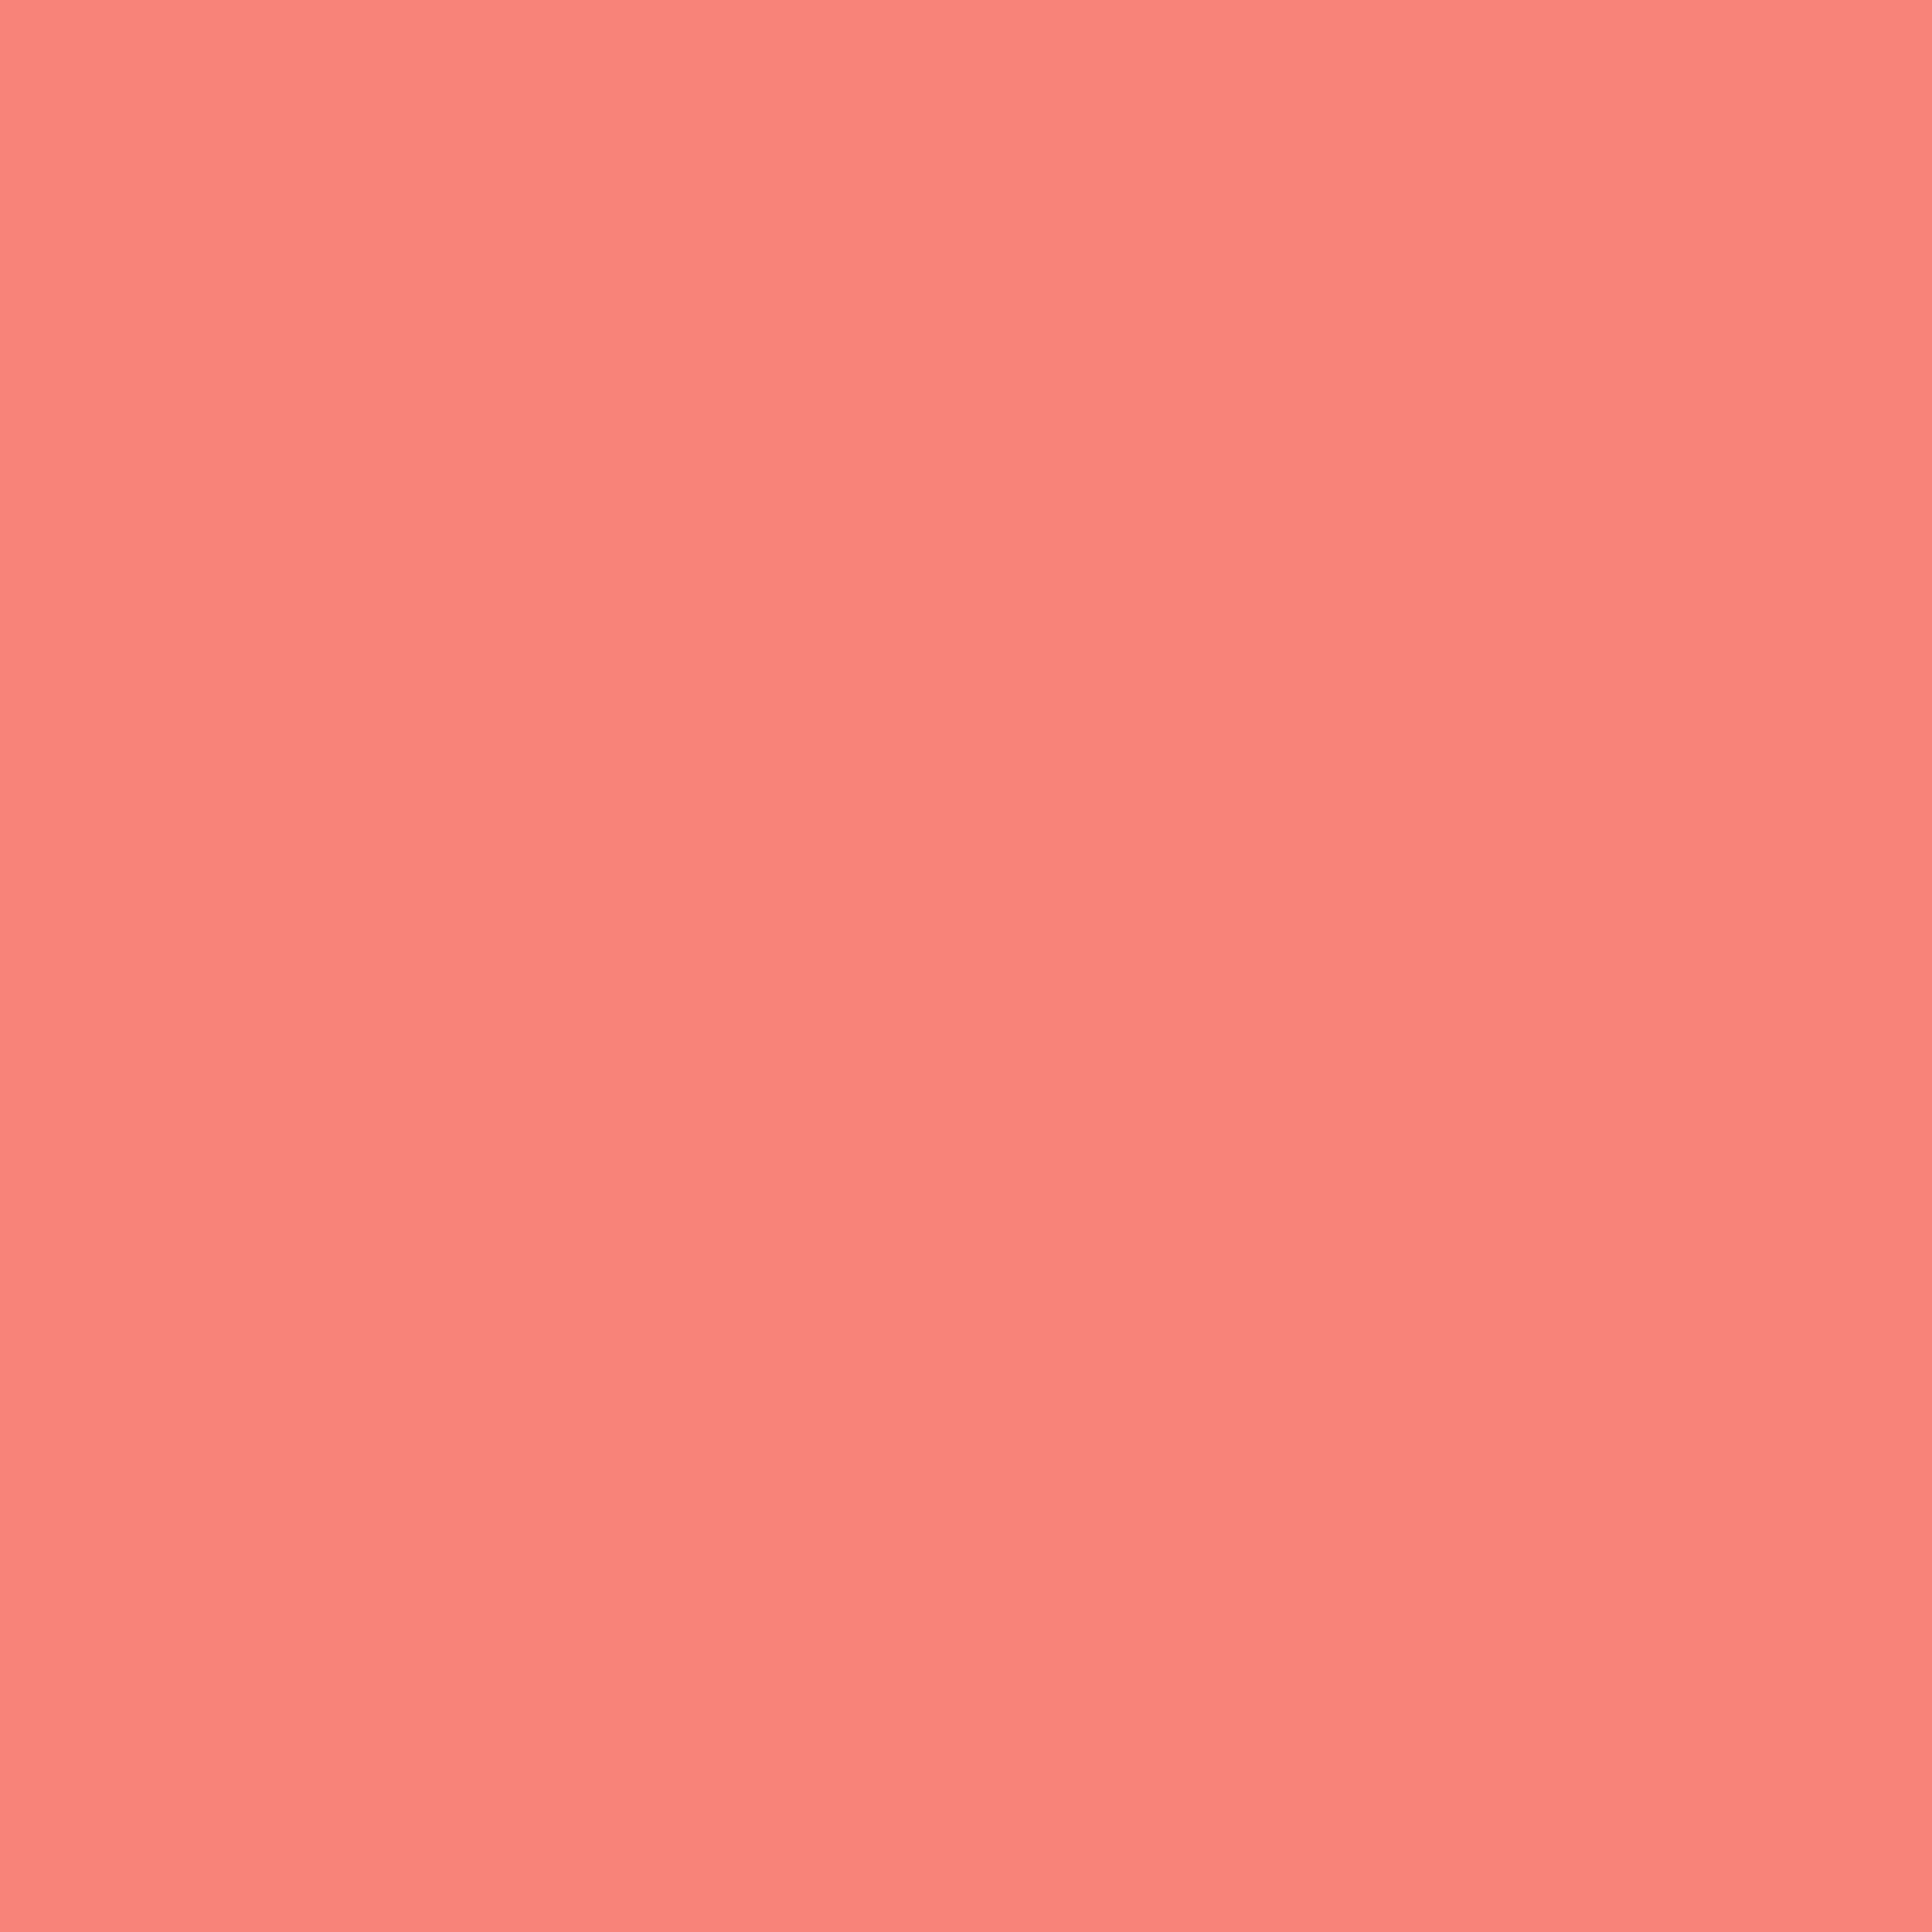 2732x2732 Coral Pink Solid Color Background